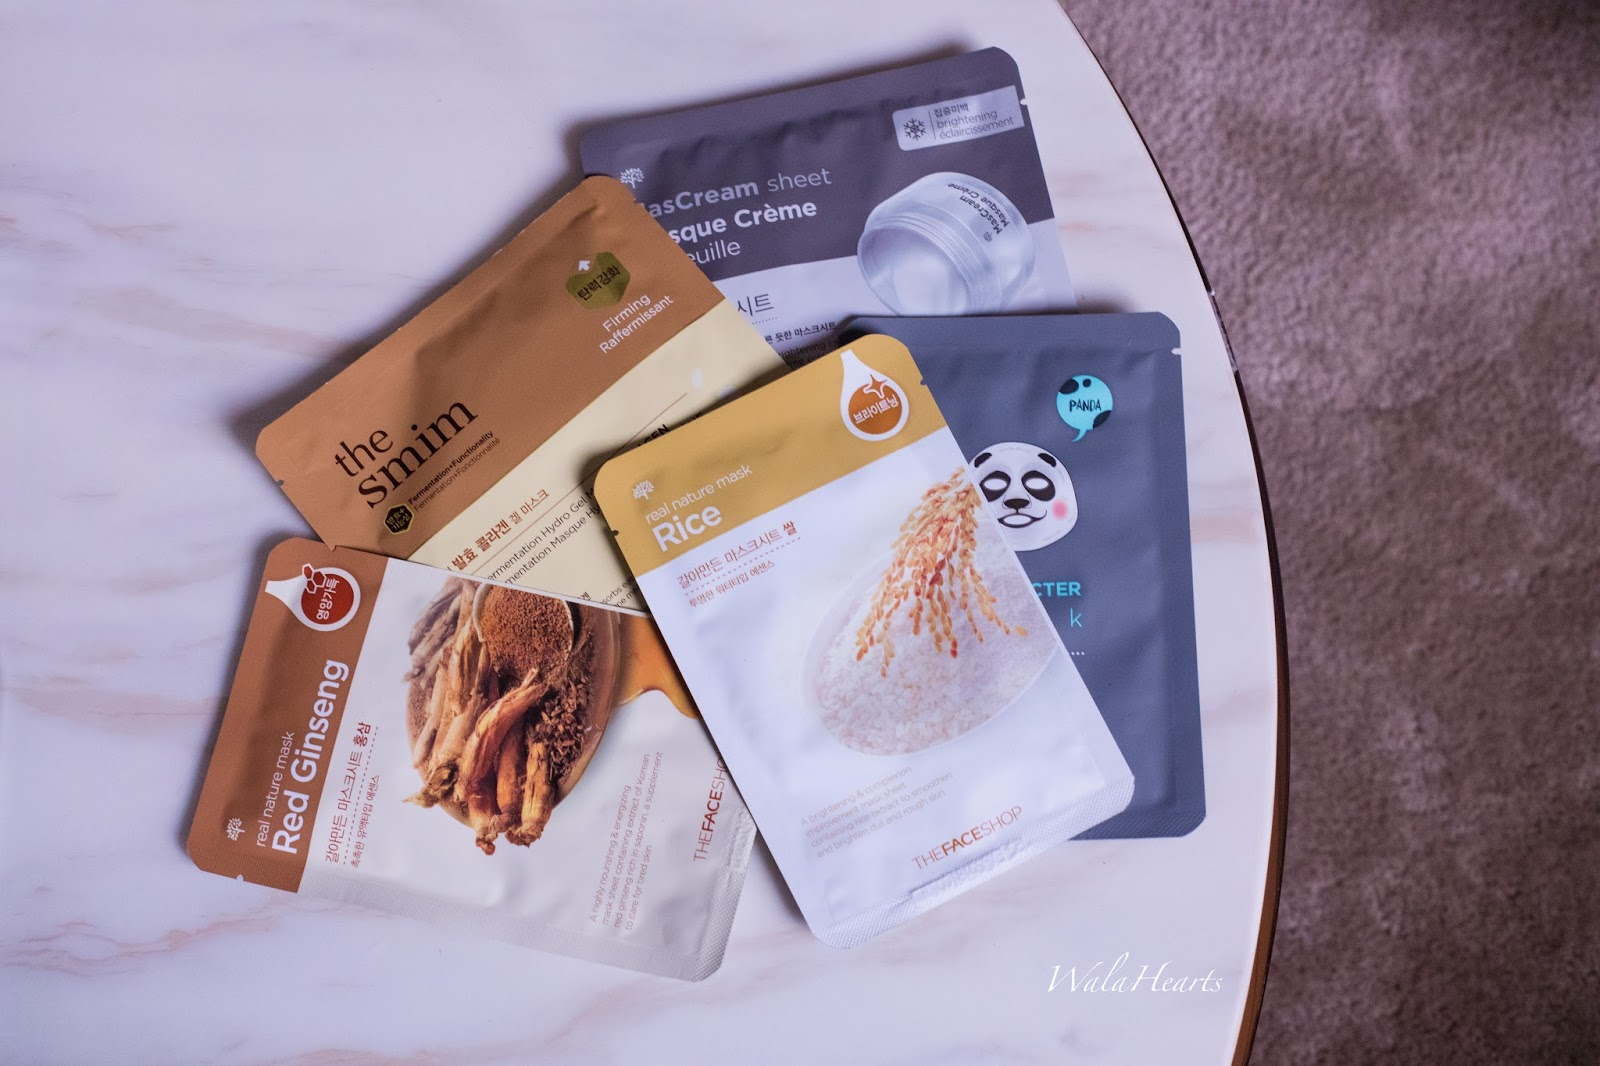 840cb4ca8 The Face Shop Sheet Masks | WalaHearts | Bloglovin'